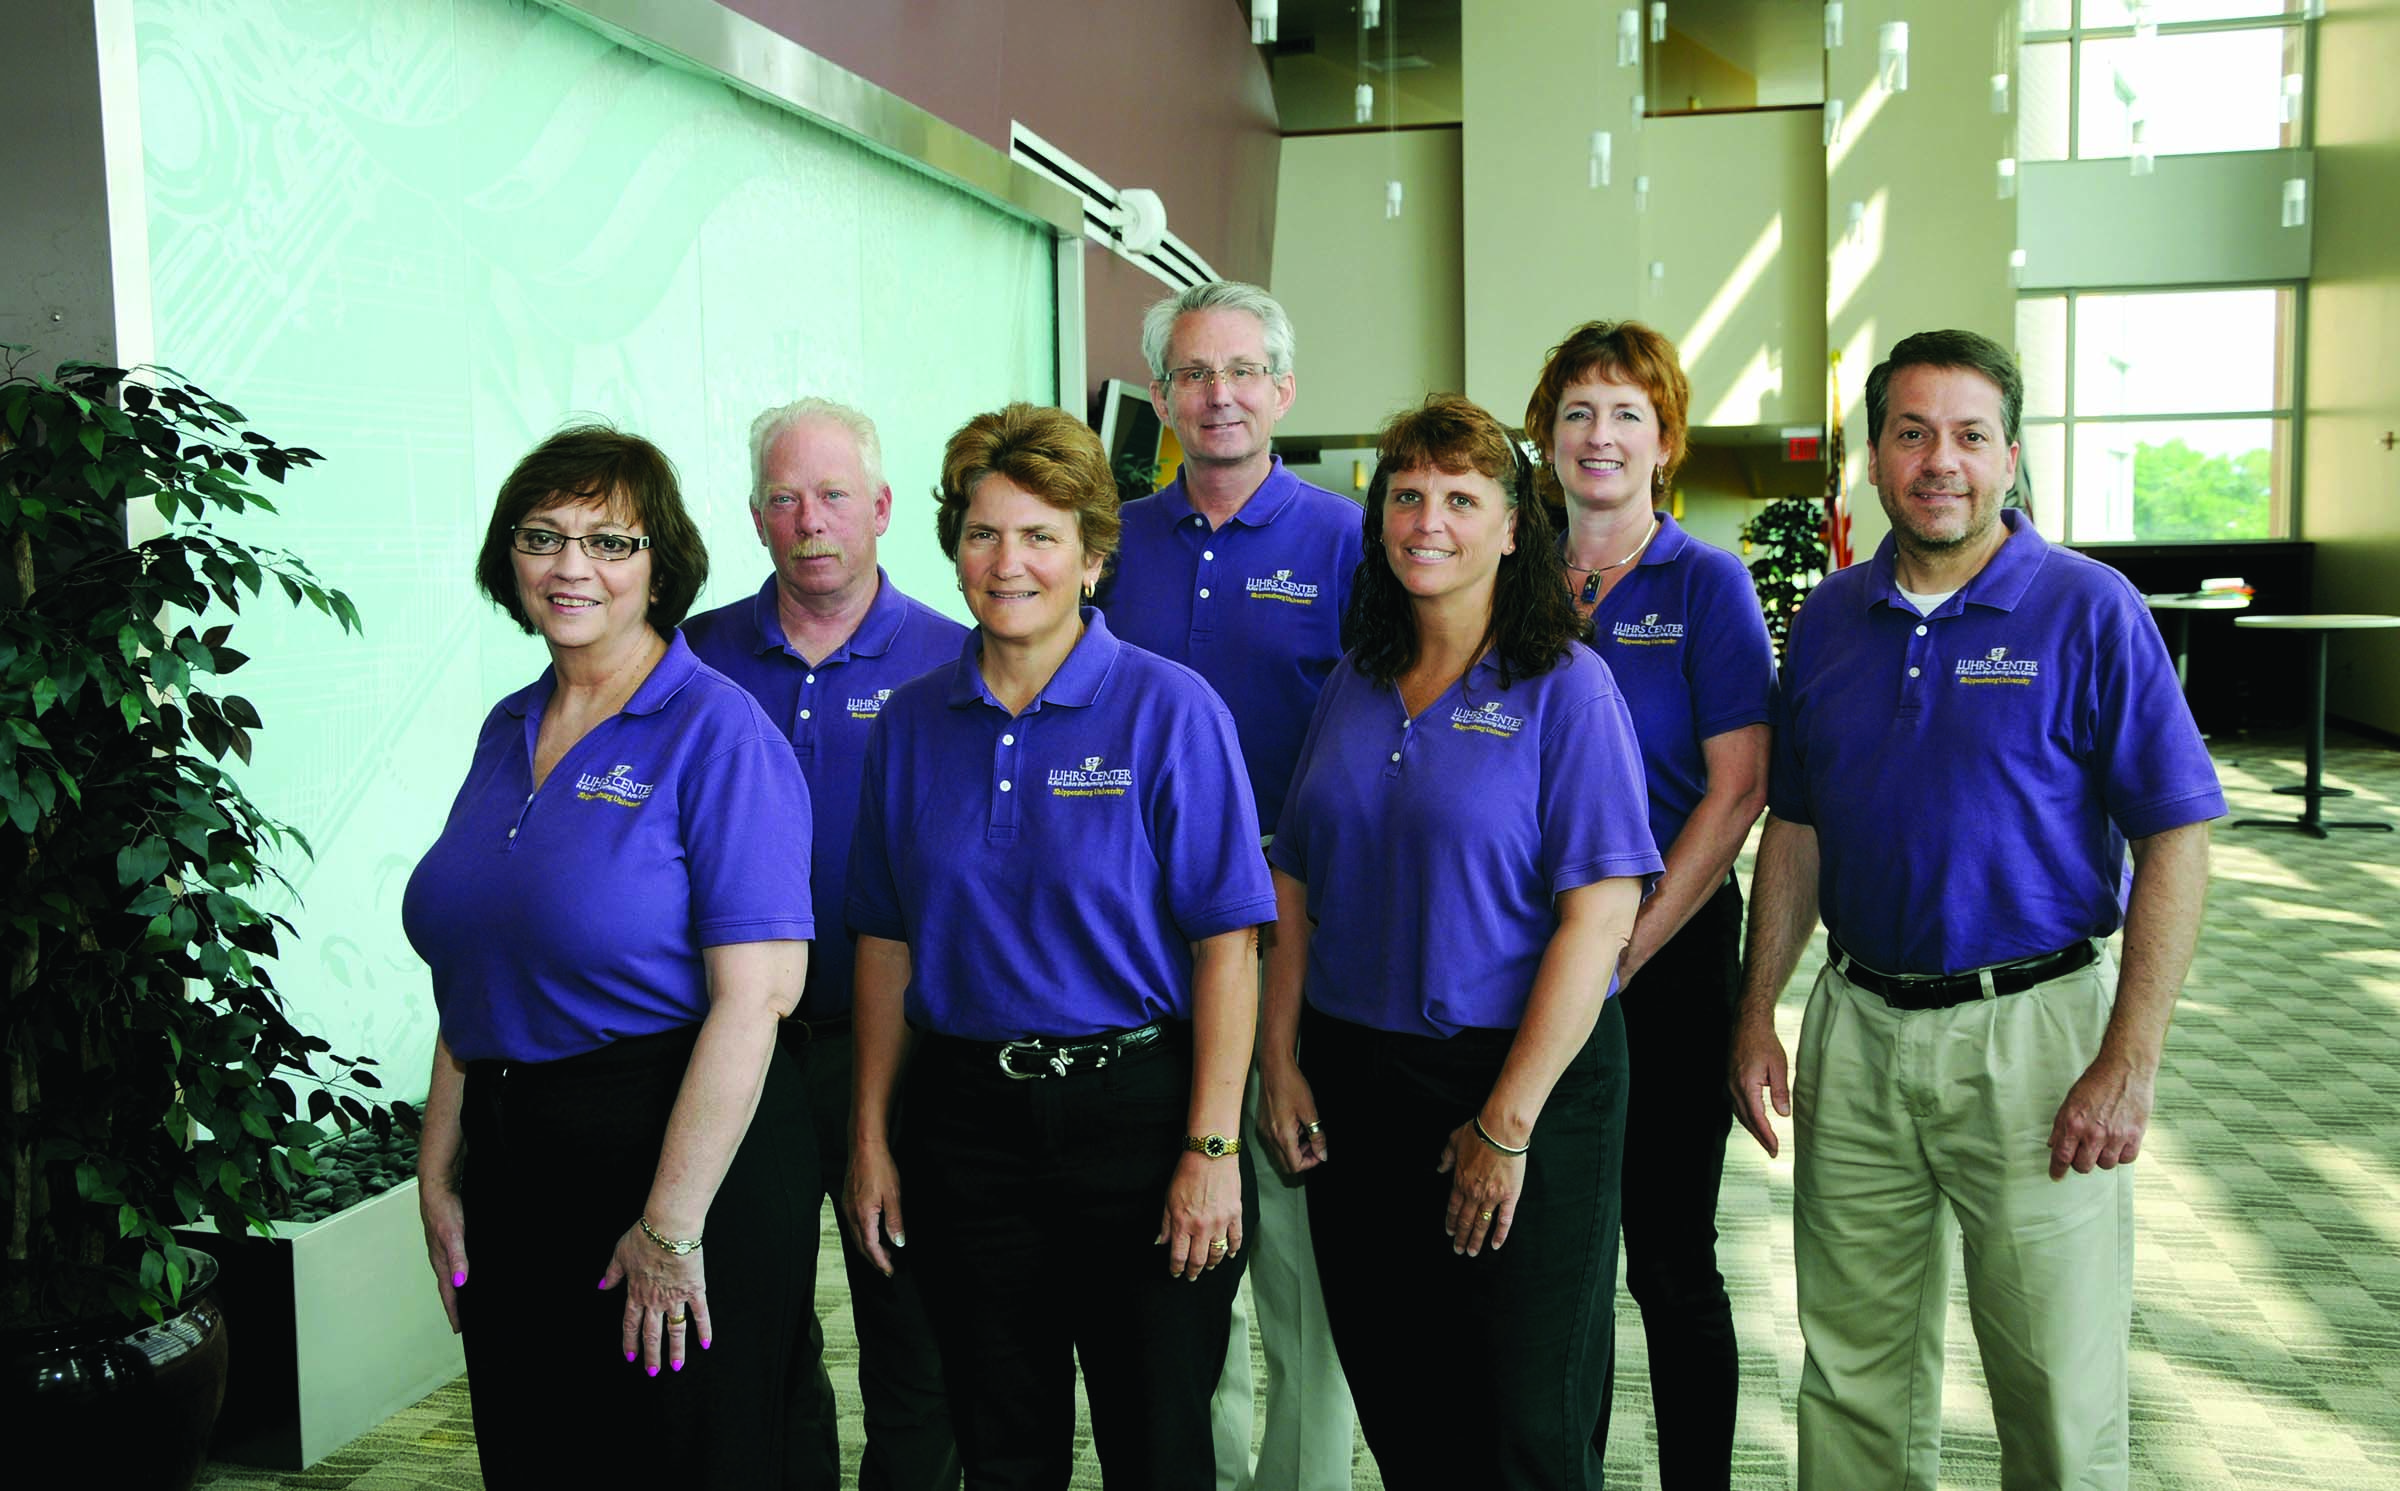 Luhrs Peforming Arts Center staff members (from left) are Deb Taylor, front of house manager; Daniel Stine, assistant technical services director; Leslie Folmer Clinton '82, director; Robert Shirk, technical services director; Jill Heberlig, administrative assistant; Robin Dolbin '06M, ticket services and sales manager; and Mark Bodenhorn '84, director of marketing and administrative services.